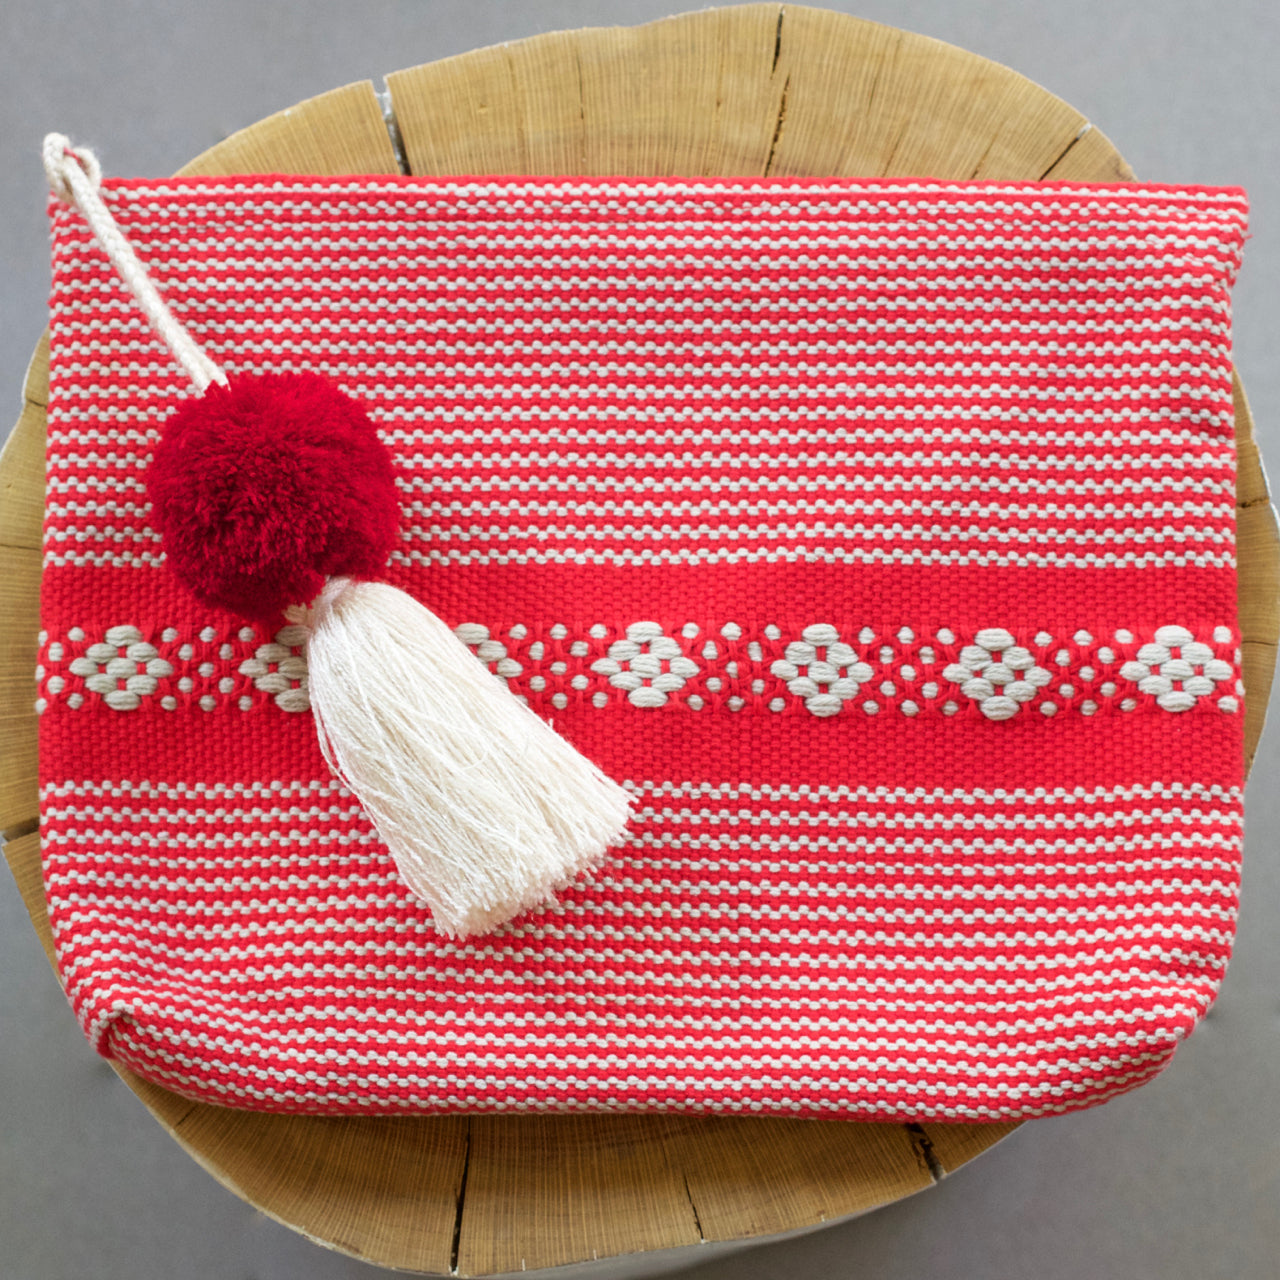 Jalieza Striped Clutch 10  Clutch Red - Cielo Collective handmade Mexico Guatemala